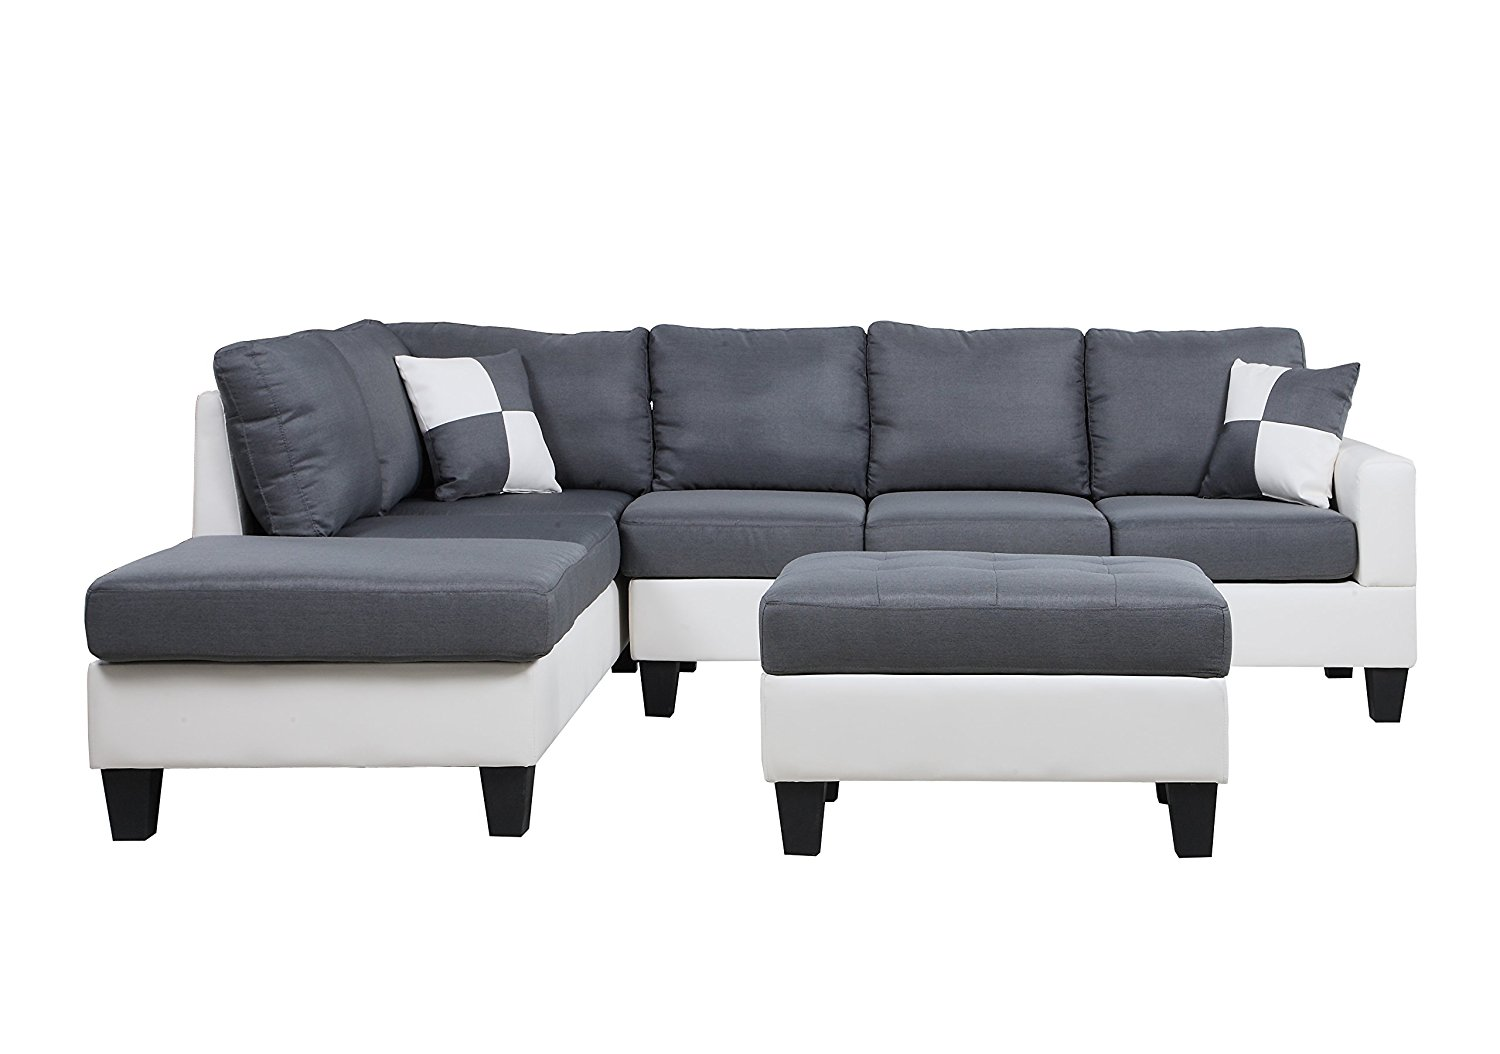 Black & White, 2 Tone Leather Living Room Sectional Sofa (White ...